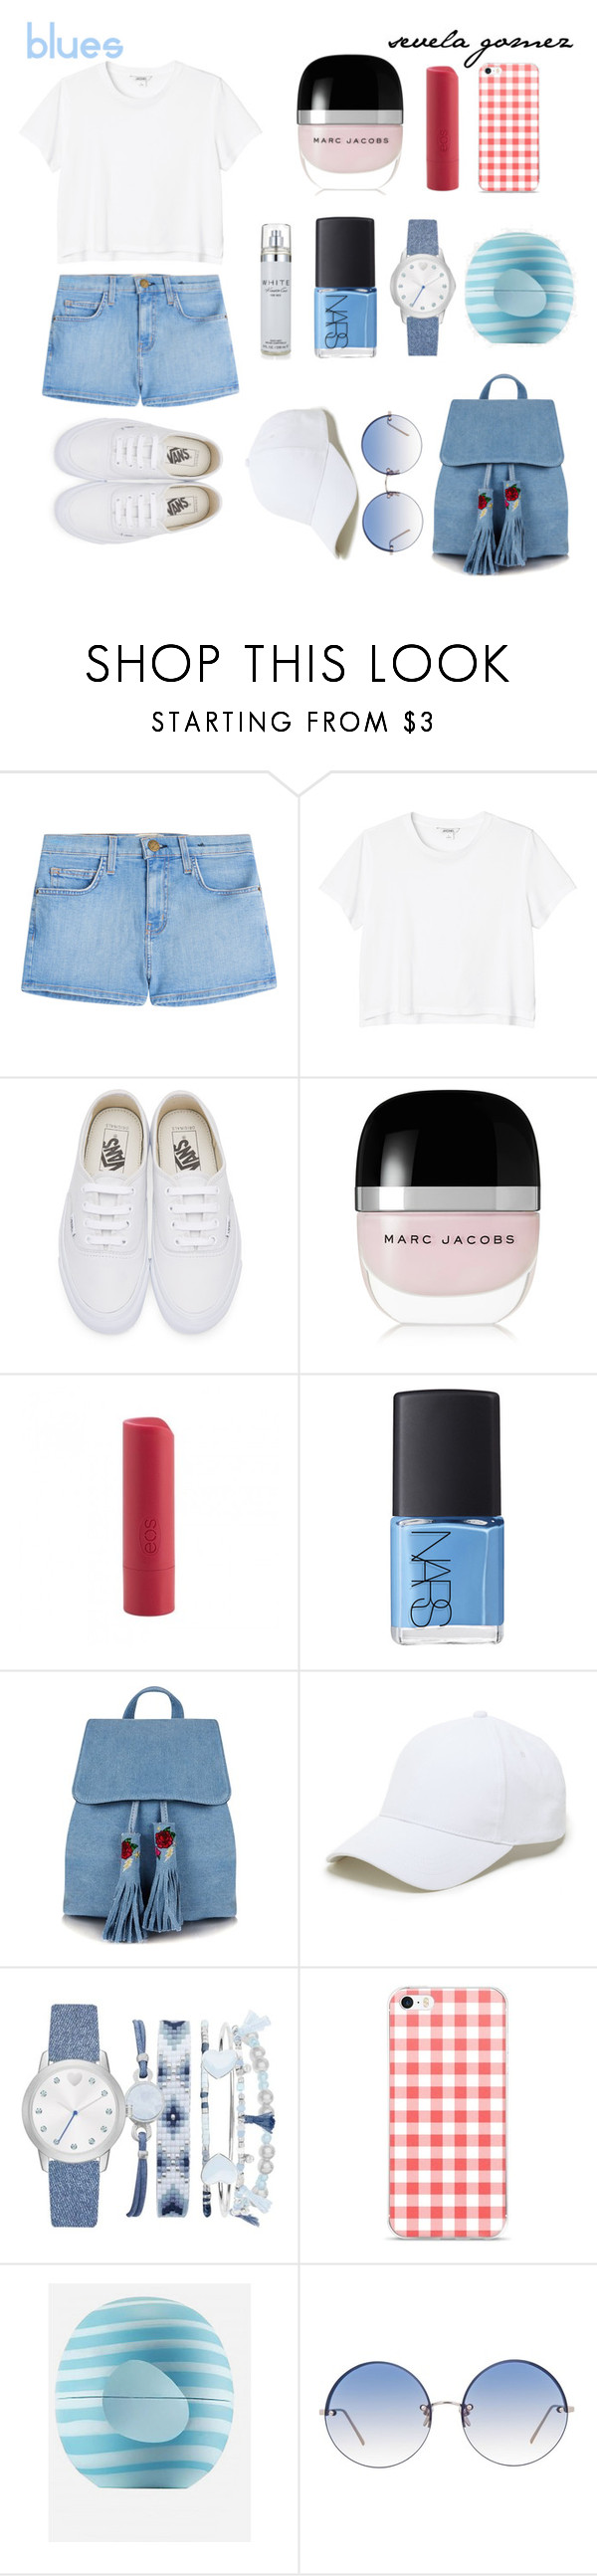 """cool blues"" by sequiagomez ❤ liked on Polyvore featuring Current/Elliott, Monki, Vans, Marc Jacobs, Eos, NARS Cosmetics, Skinnydip, Sole Society, A.X.N.Y. and Linda Farrow"